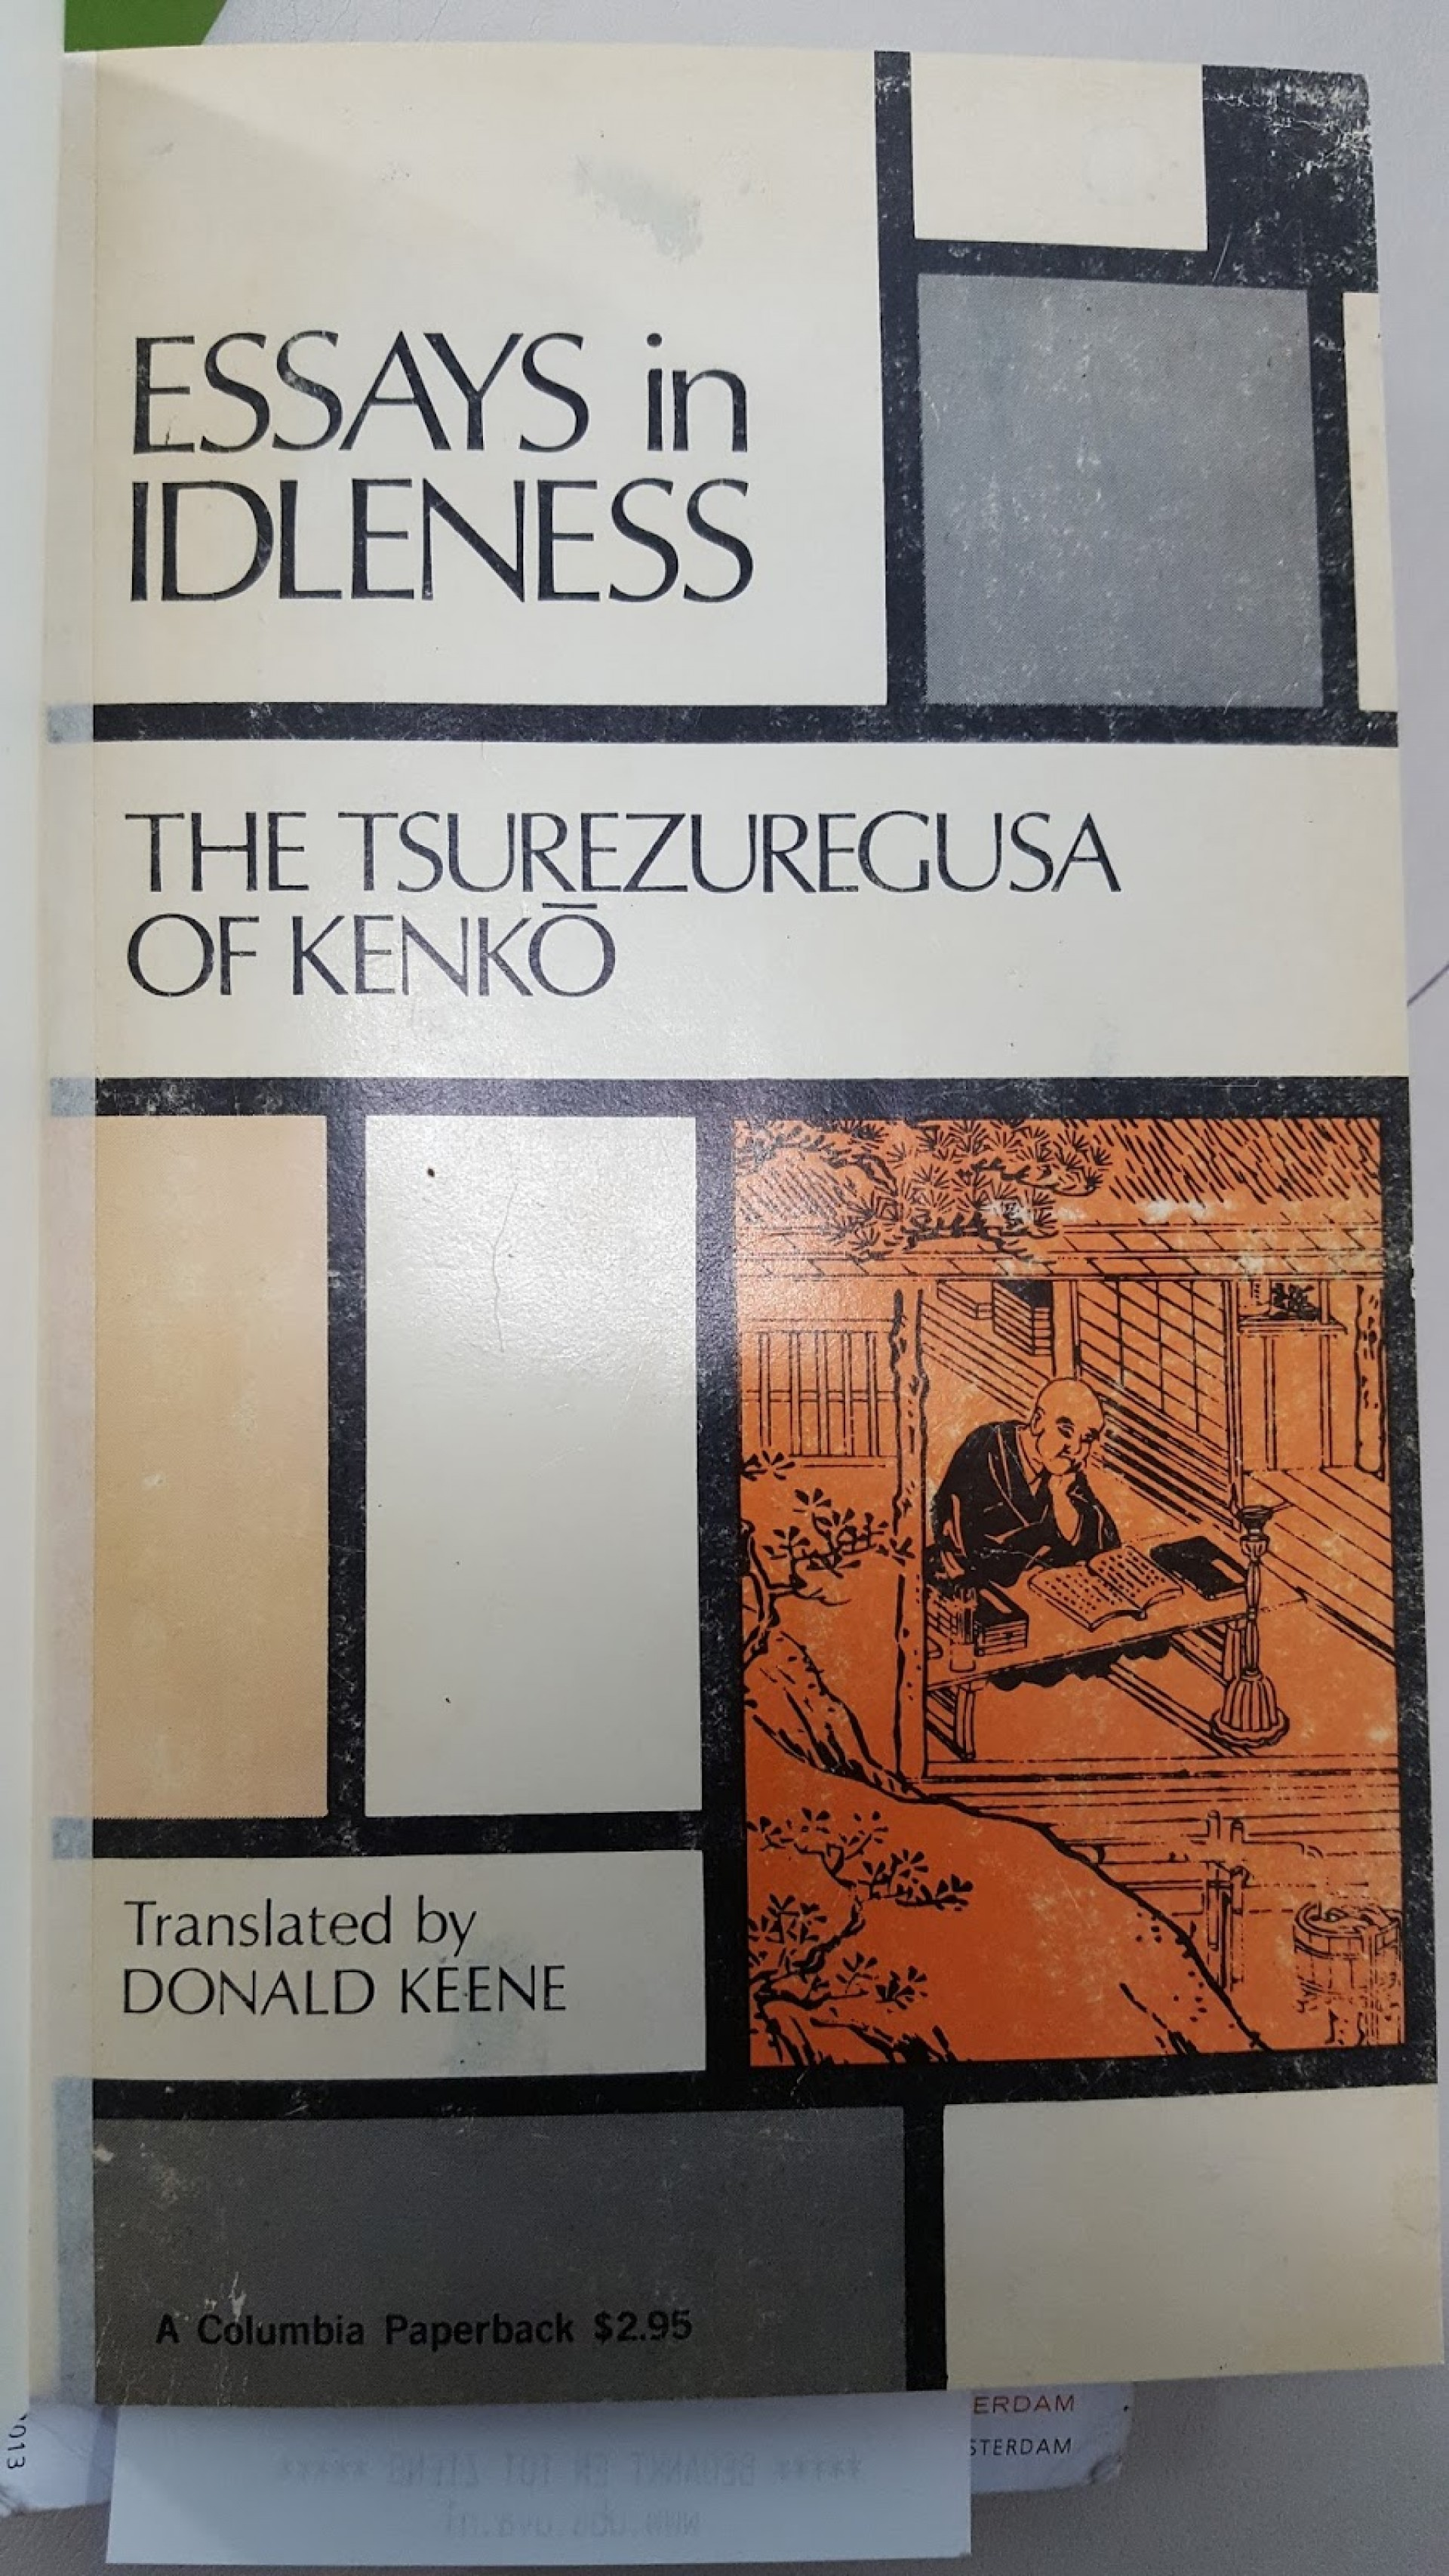 007 Essays In Idleness 20180502 084153 Essay Magnificent Summary The Tsurezuregusa Of Kenkō 1920